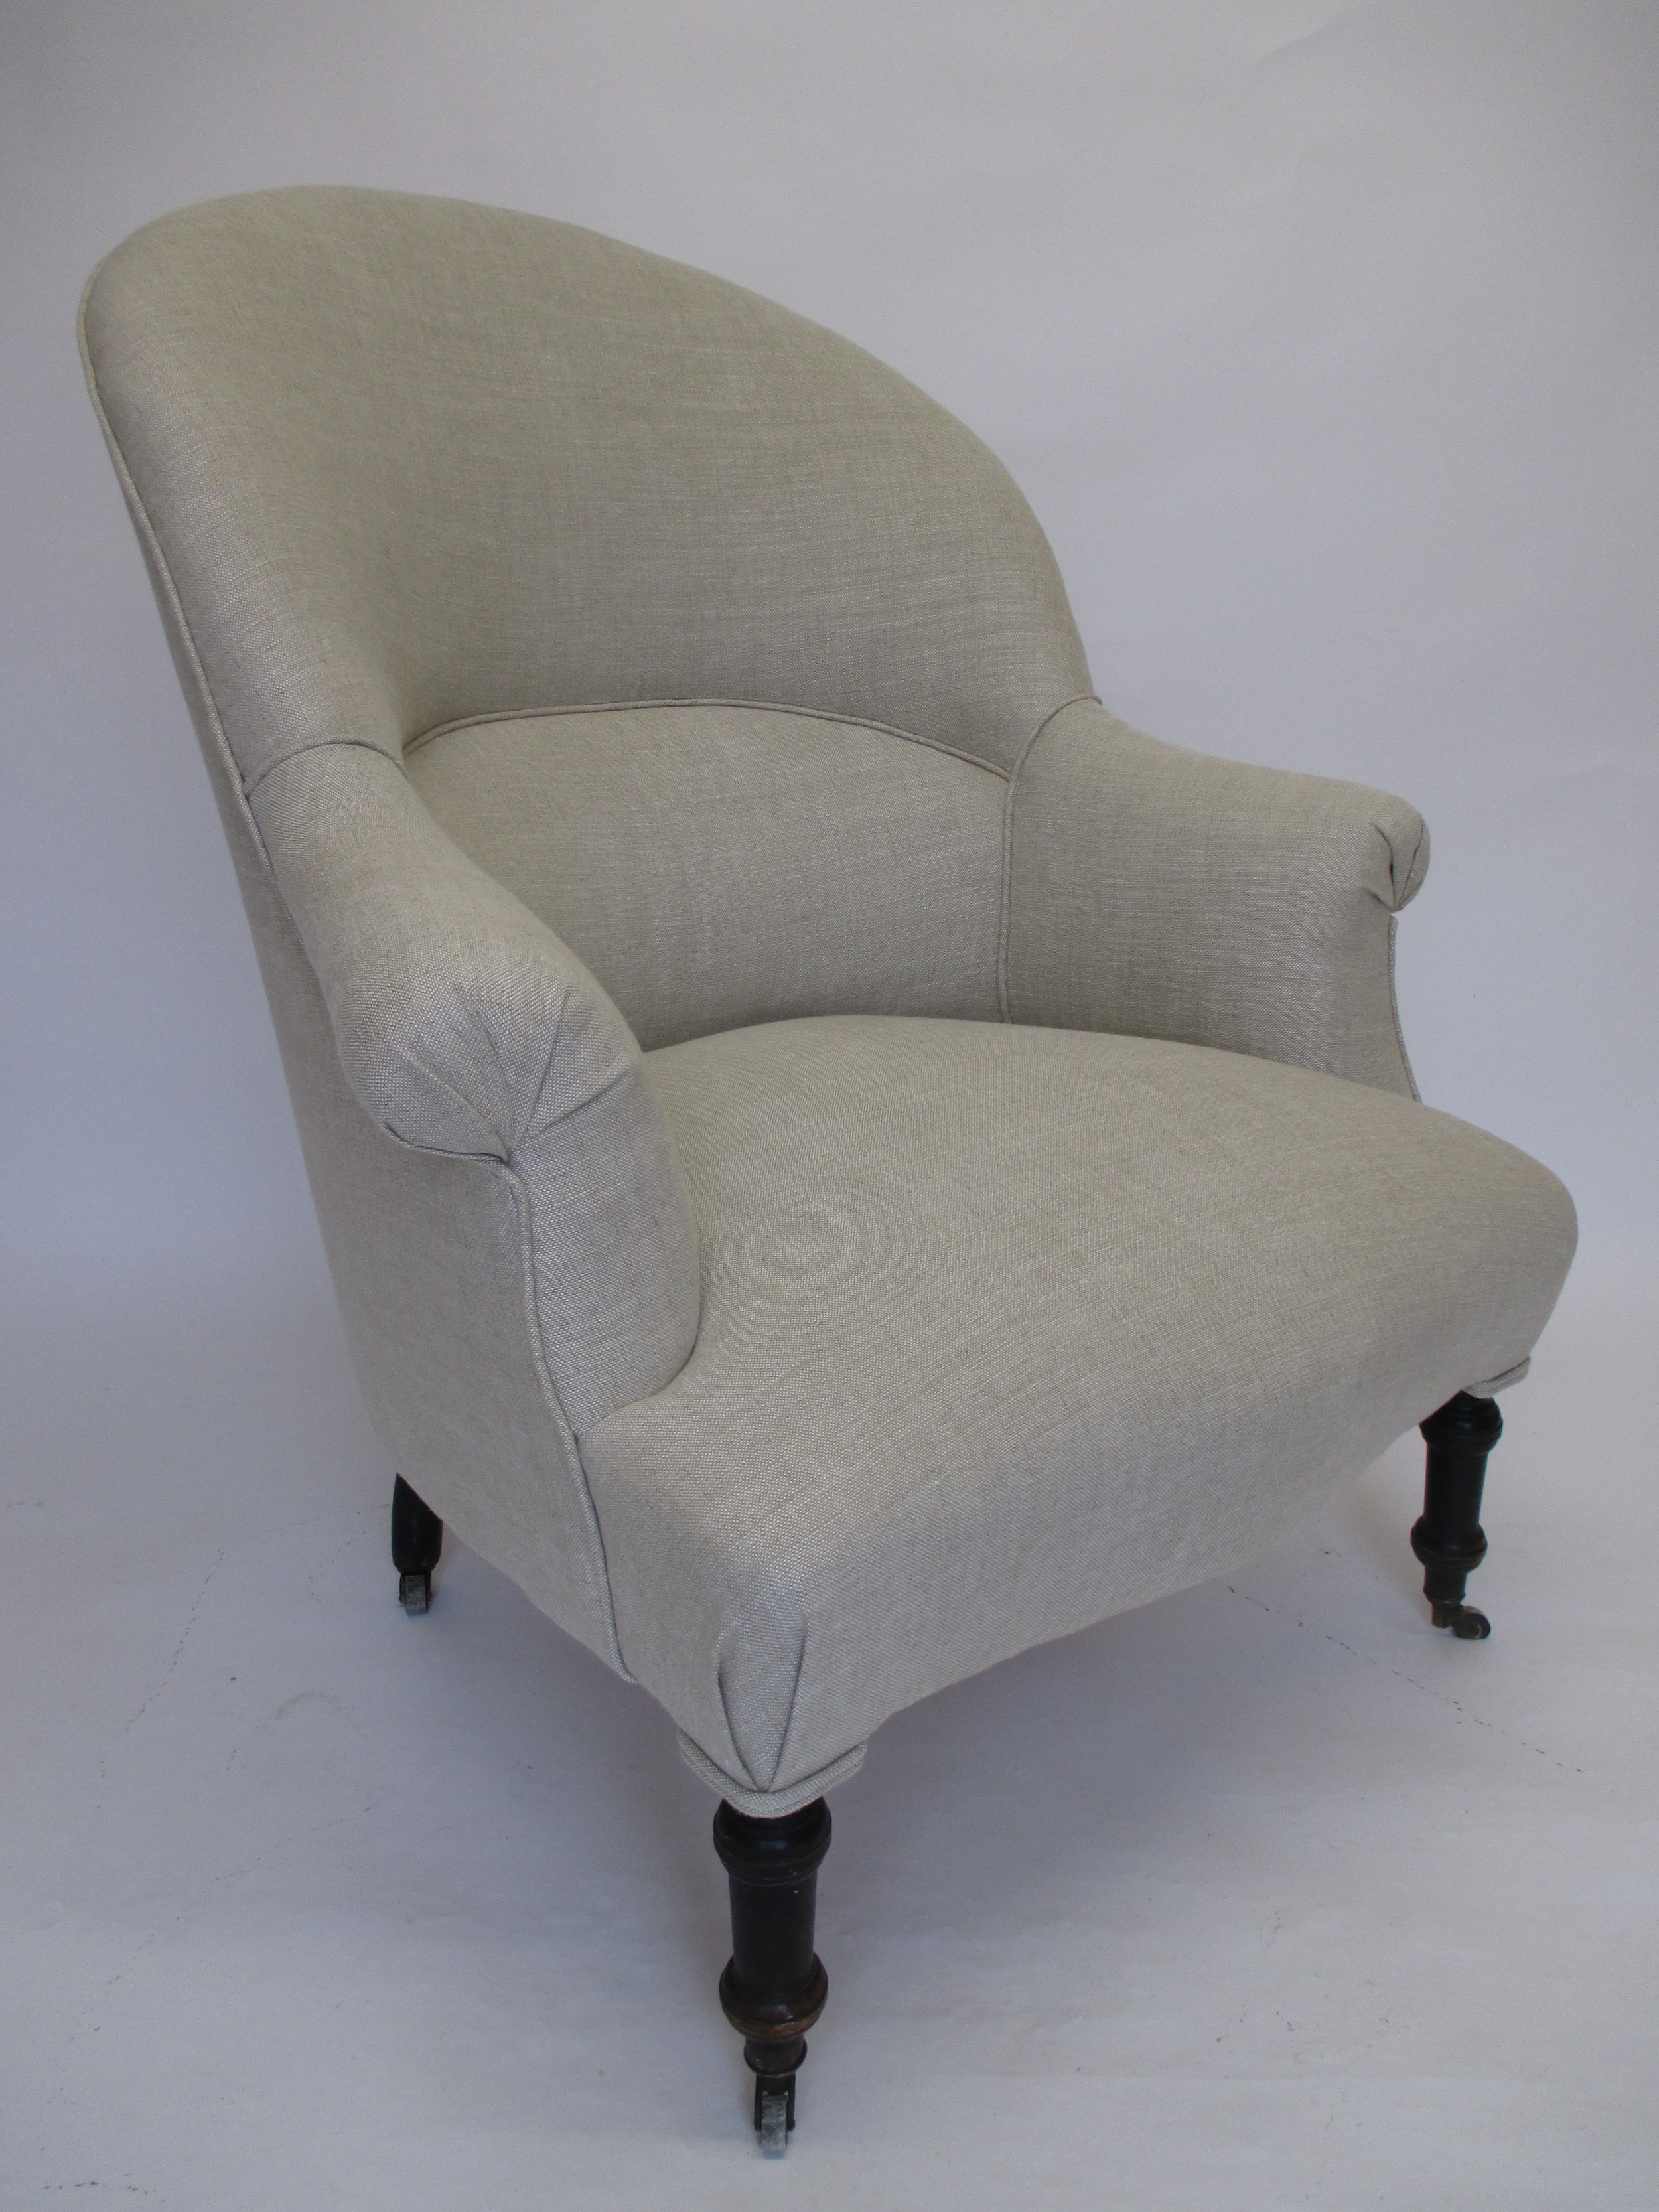 This french chair with a tapered back has been covered in a simple linen fabric from Linwood, a classic combination.